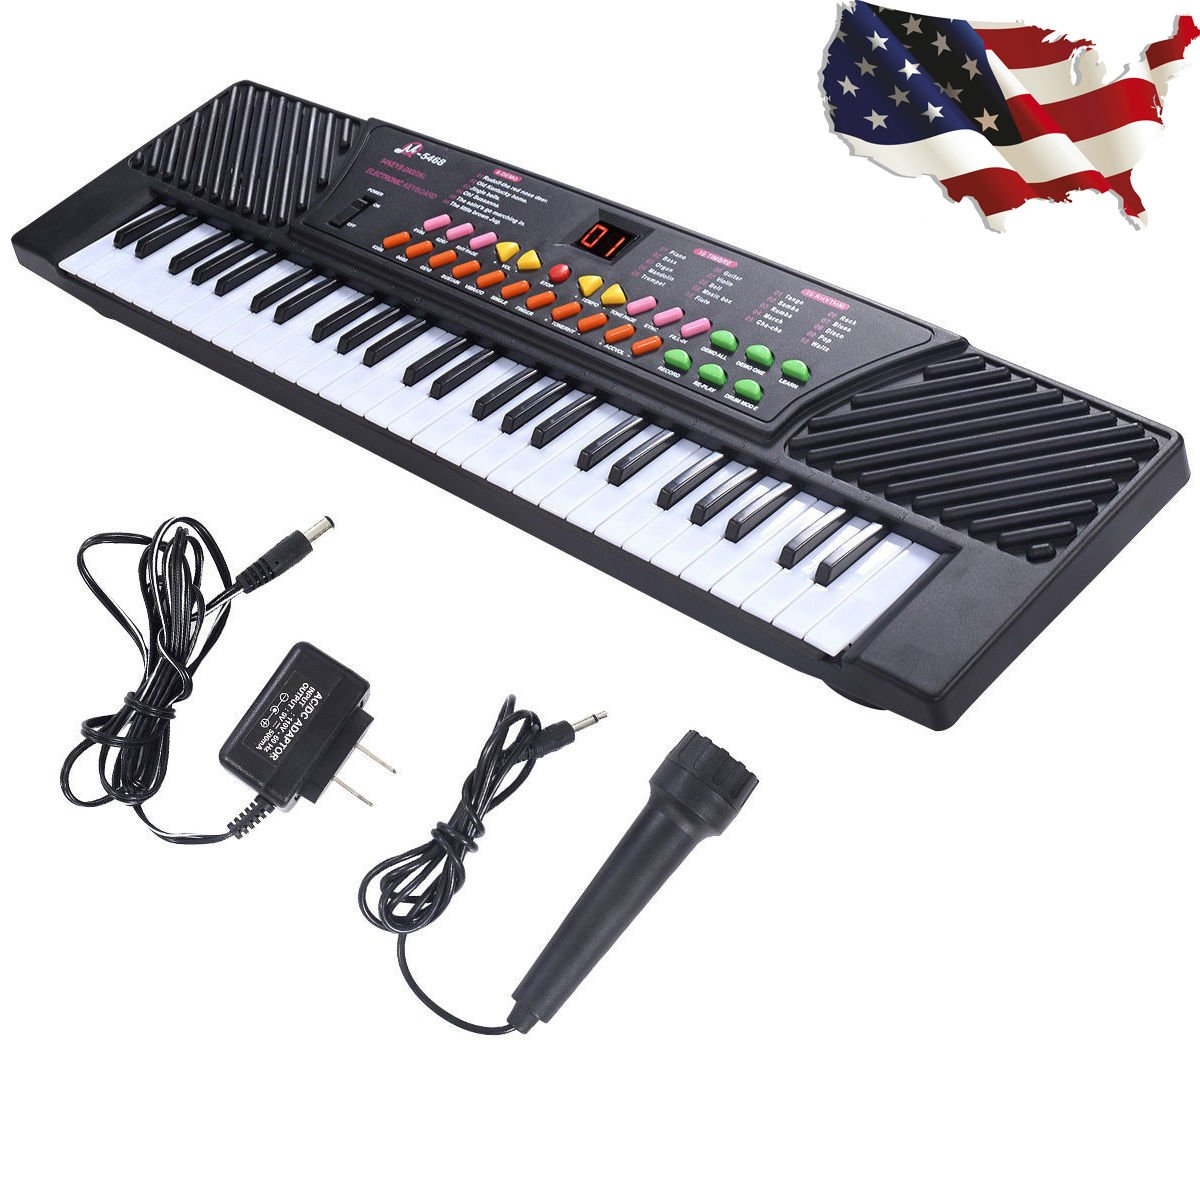 New 54 Keys Music Electronic Keyboard Kid Electric Piano Organ W/Mic & Adapter, This Keyboard Is Definitely The Best Gift For Your Children, External Speaker/Microphone/DC/AC Powe